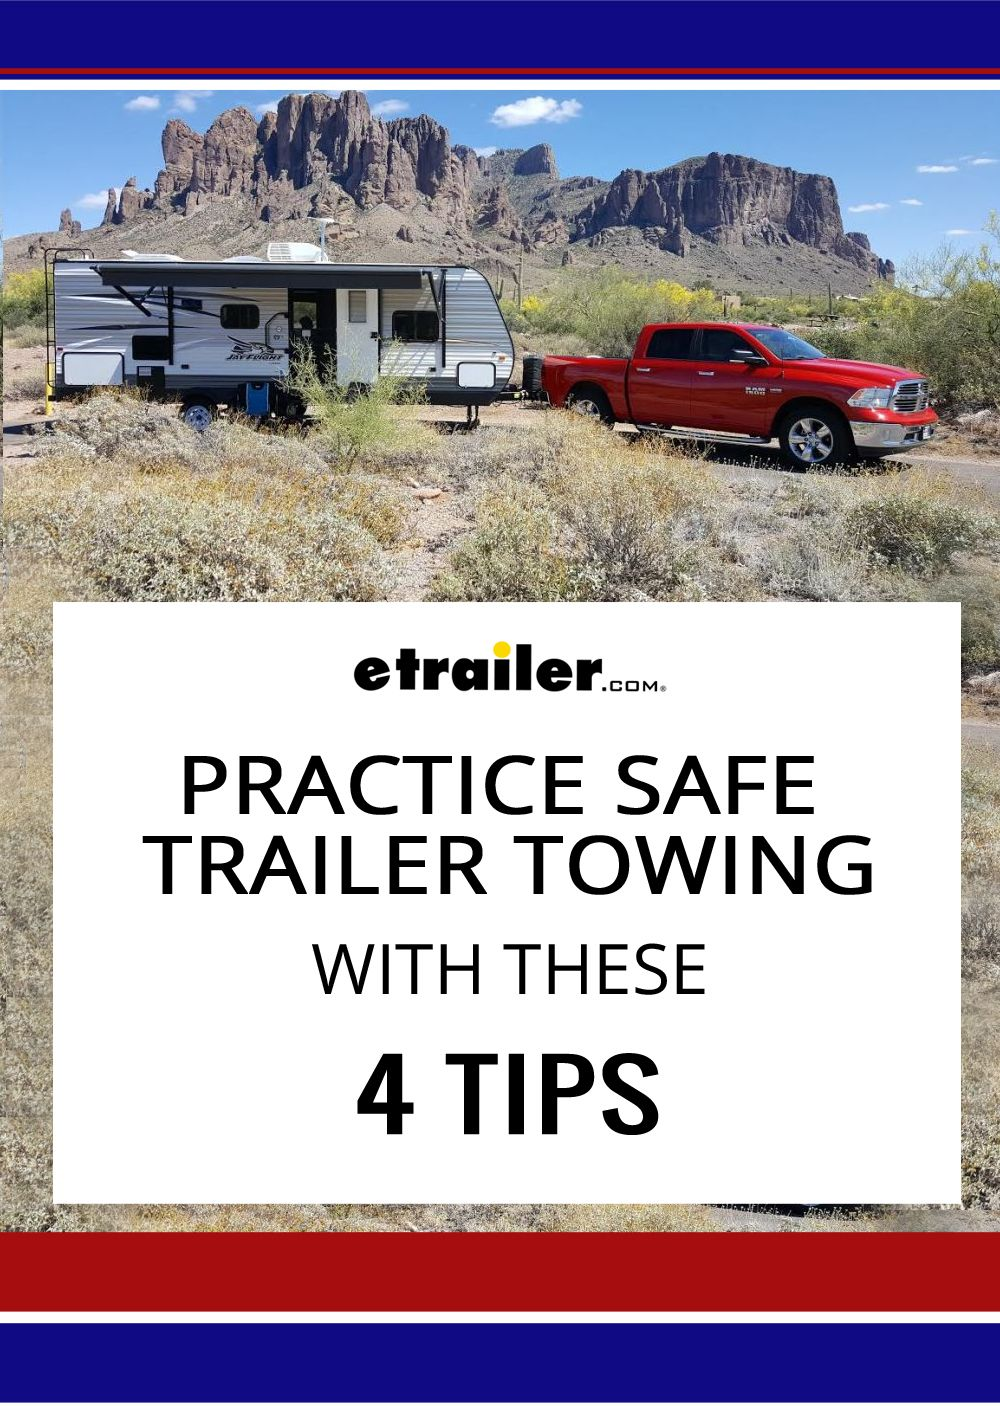 You Take Your Safety Seriously When Driving Buckling Your Seat Belt Maintaining Your Vehicle Etc It S Just As Importa Towing Utility Trailer Camping Trailer